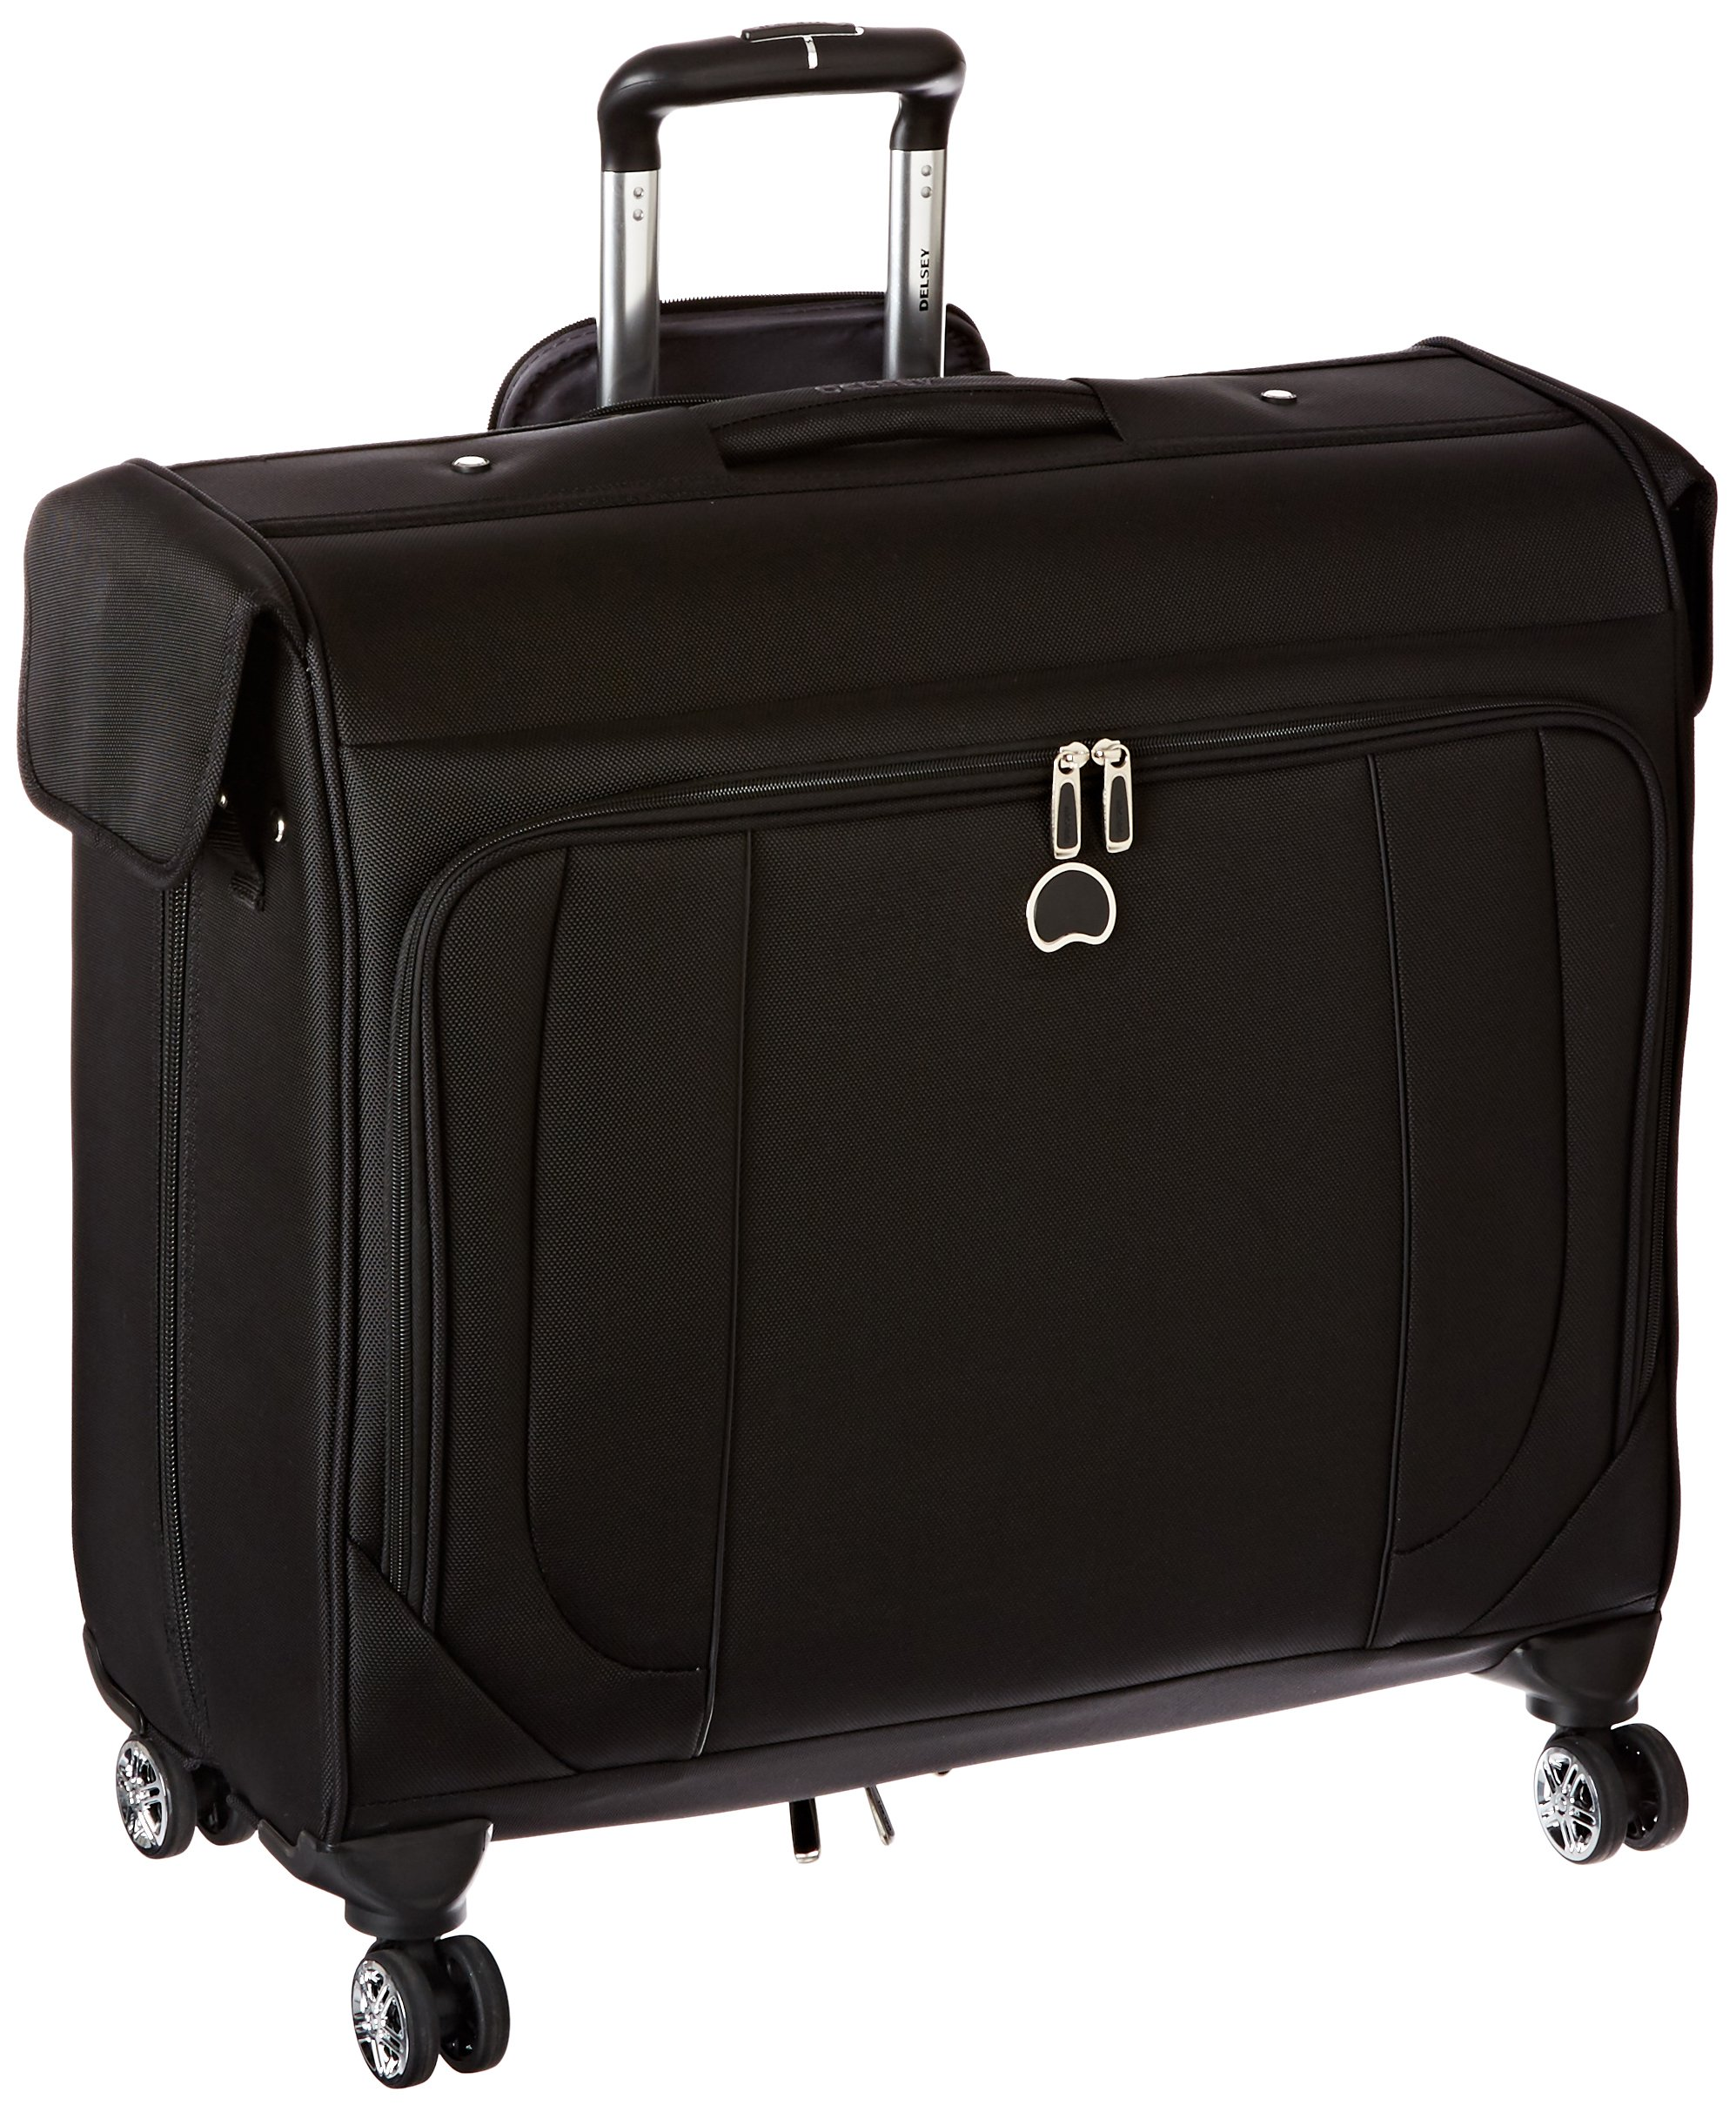 Delsey Luggage Helium Cruise Spinner Trolley Garment Bag, Black, One Size